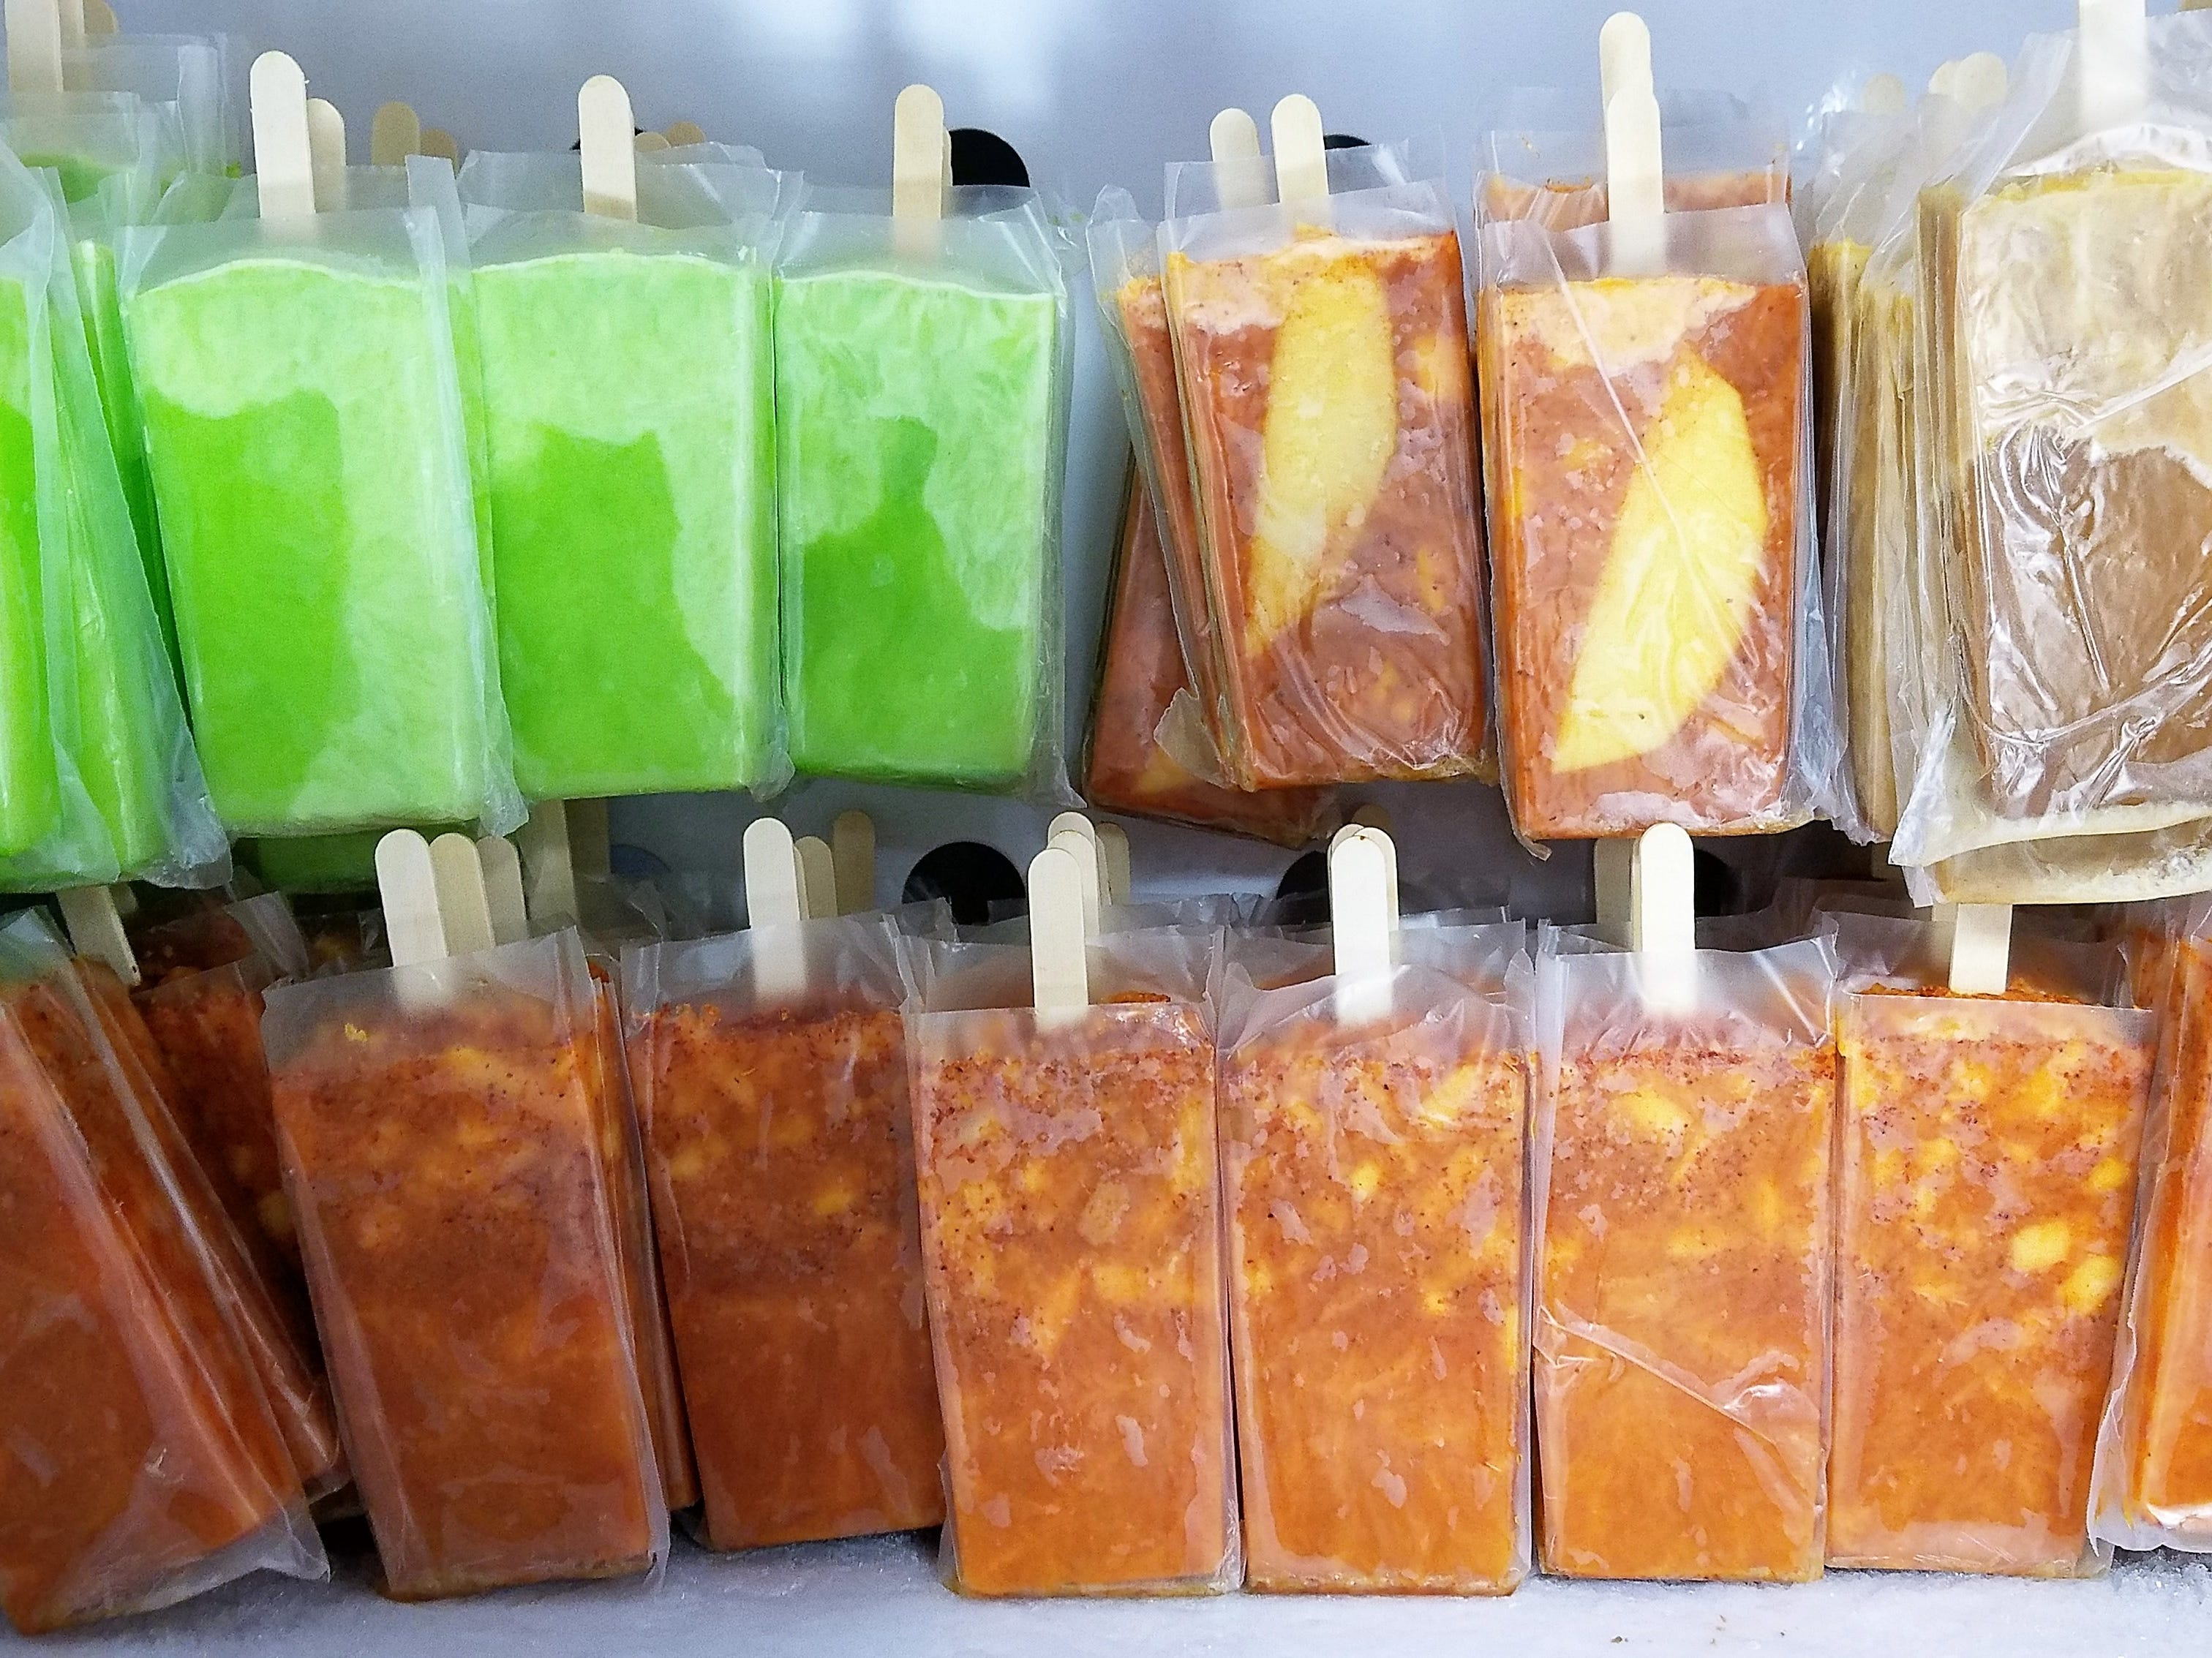 Summer is coming... it has to eventually. La Campirana offers many flavors of paletas, or iced fruit pops.